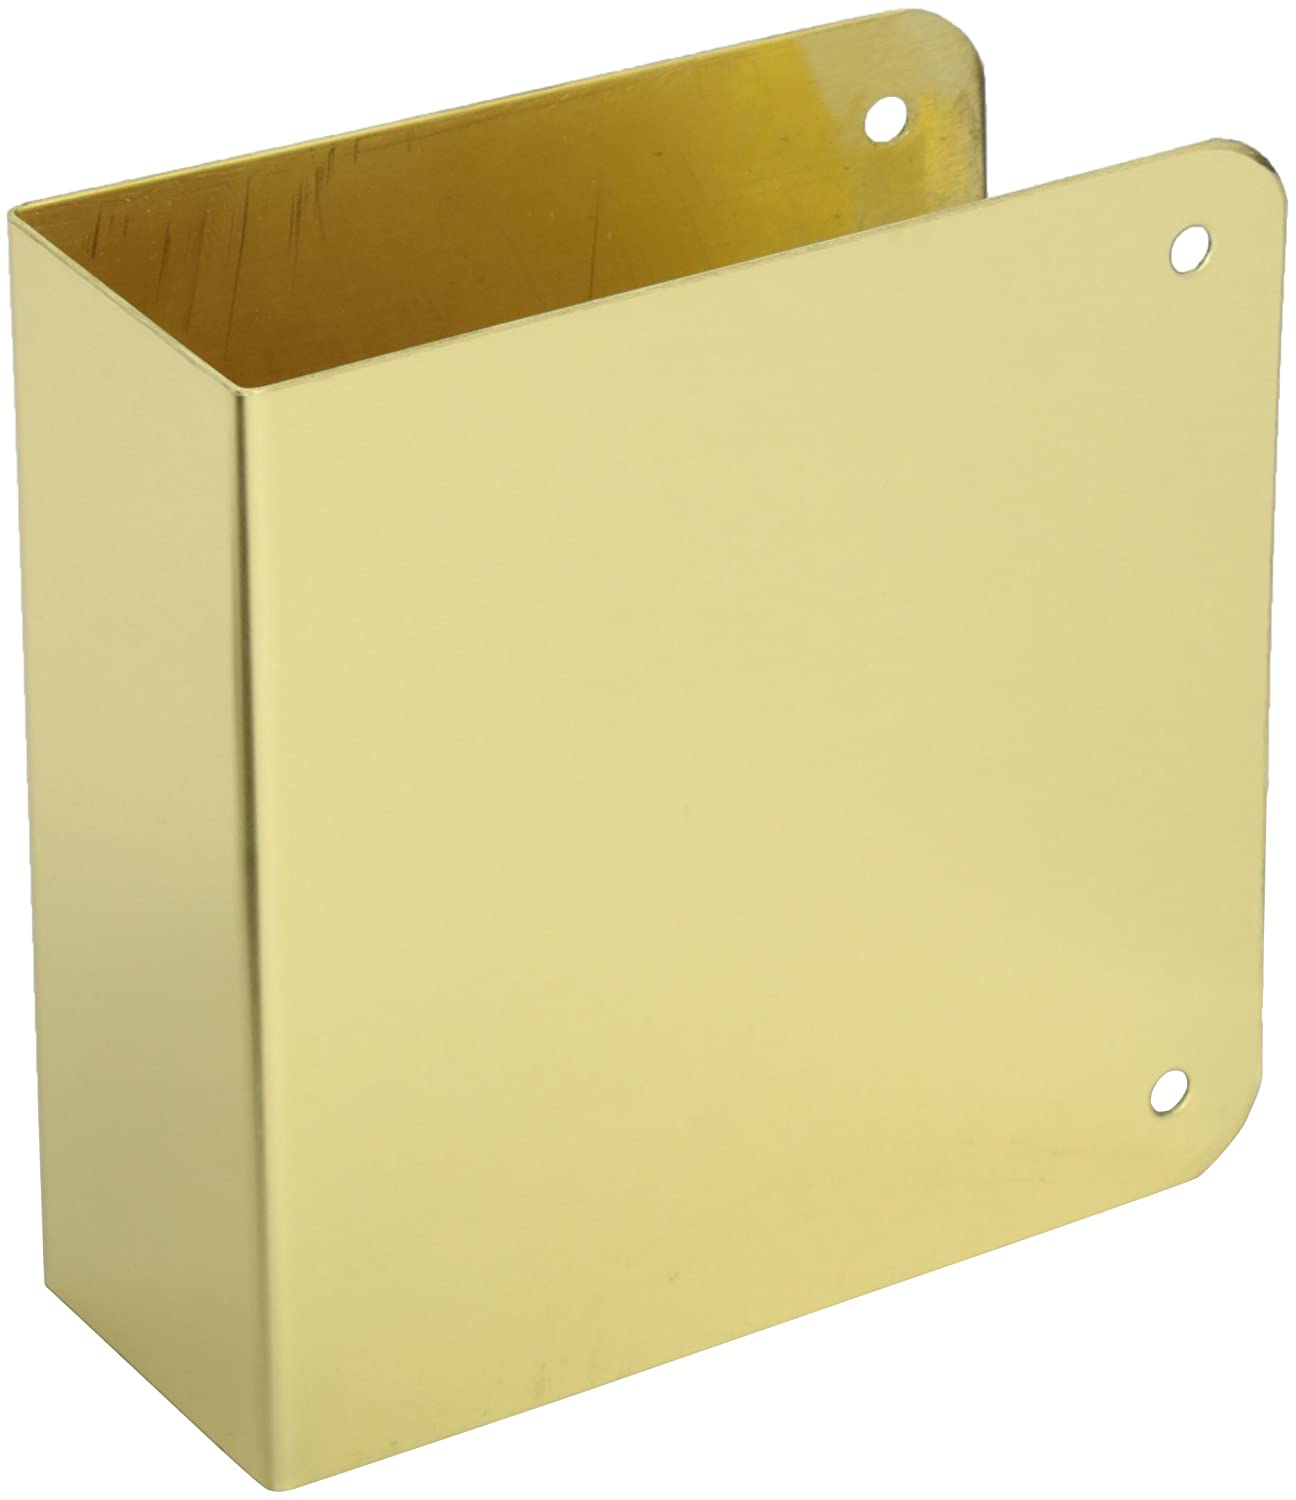 Pack of 10 Don-Jo 80-CW 22 Gauge Stainless Steel Blank Wrap-Around Plate with Trim Screws Polished Brass Finish 4-1//4 Width x 4-1//2 Height